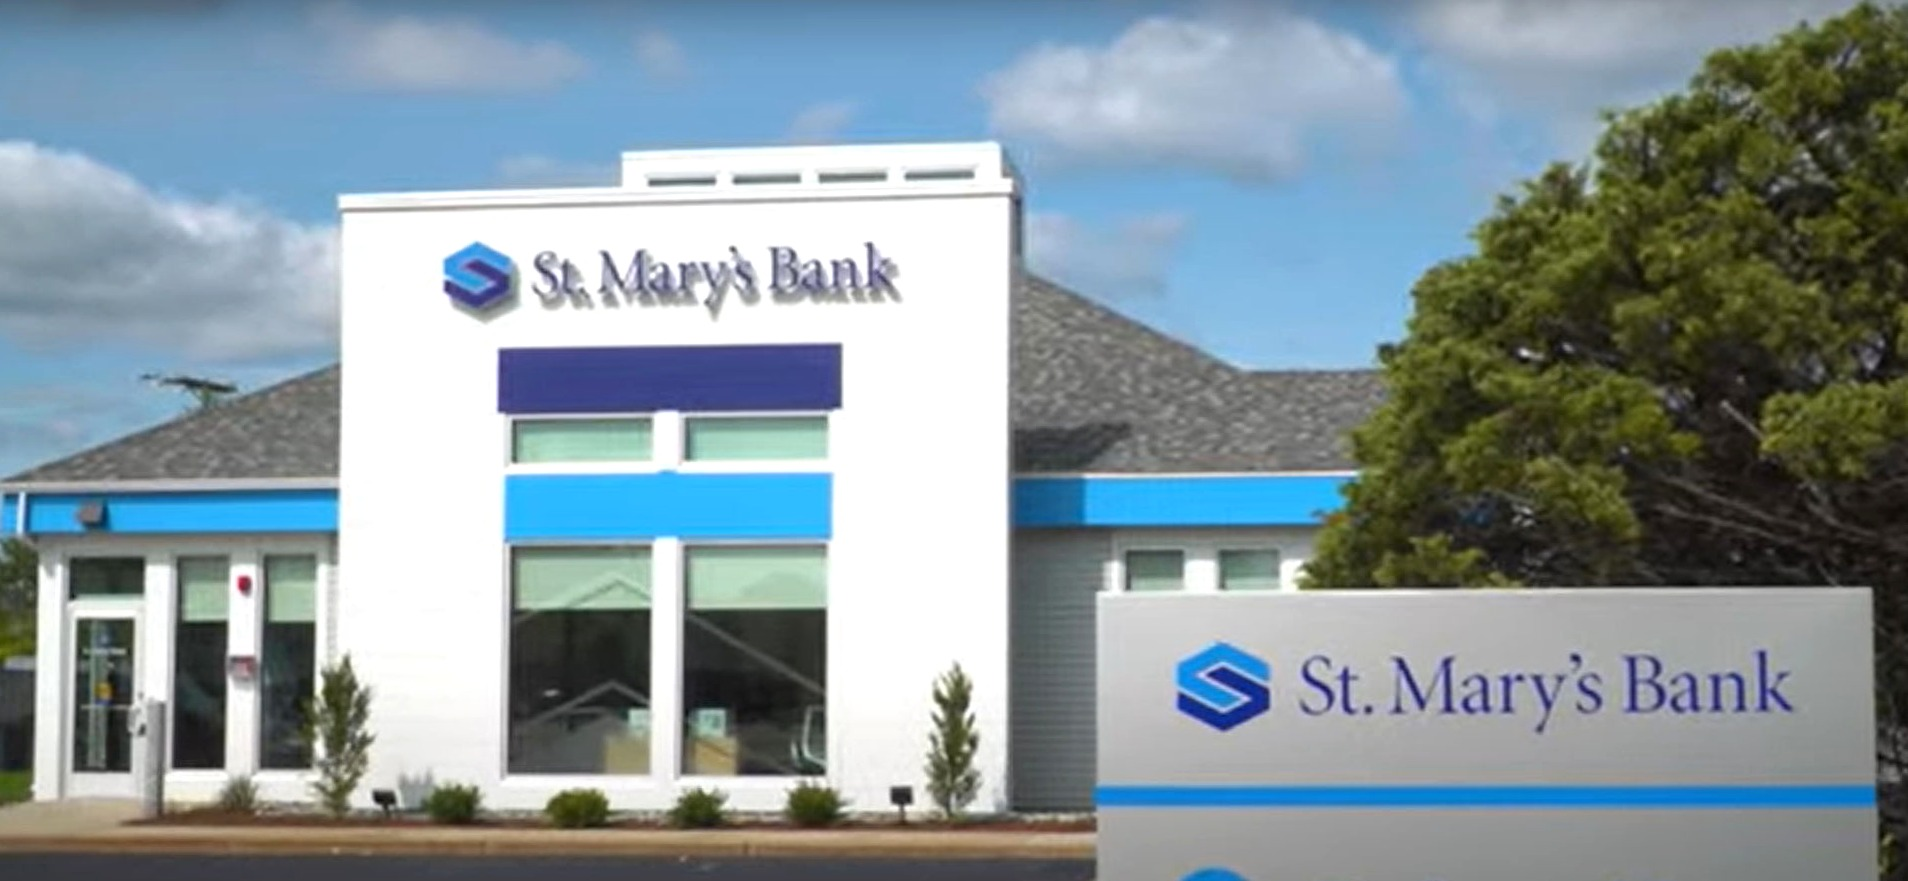 St. Mary's Bank - Nashua